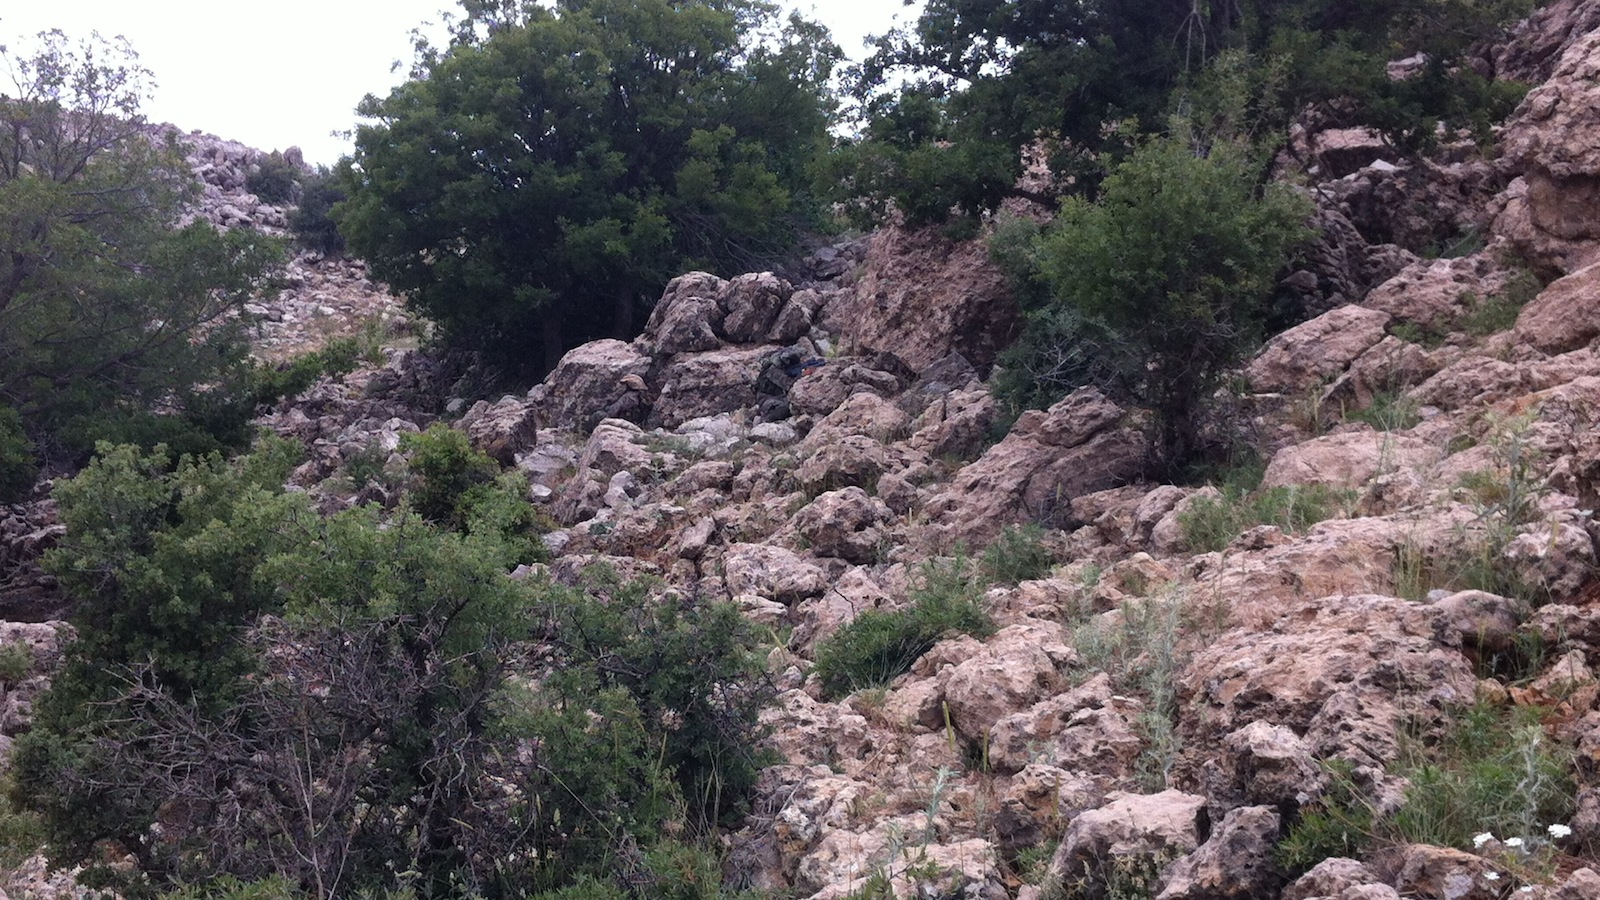 Click here to read Can You Find the Two Camouflaged Commandos in This Photo Before They Shoot You?